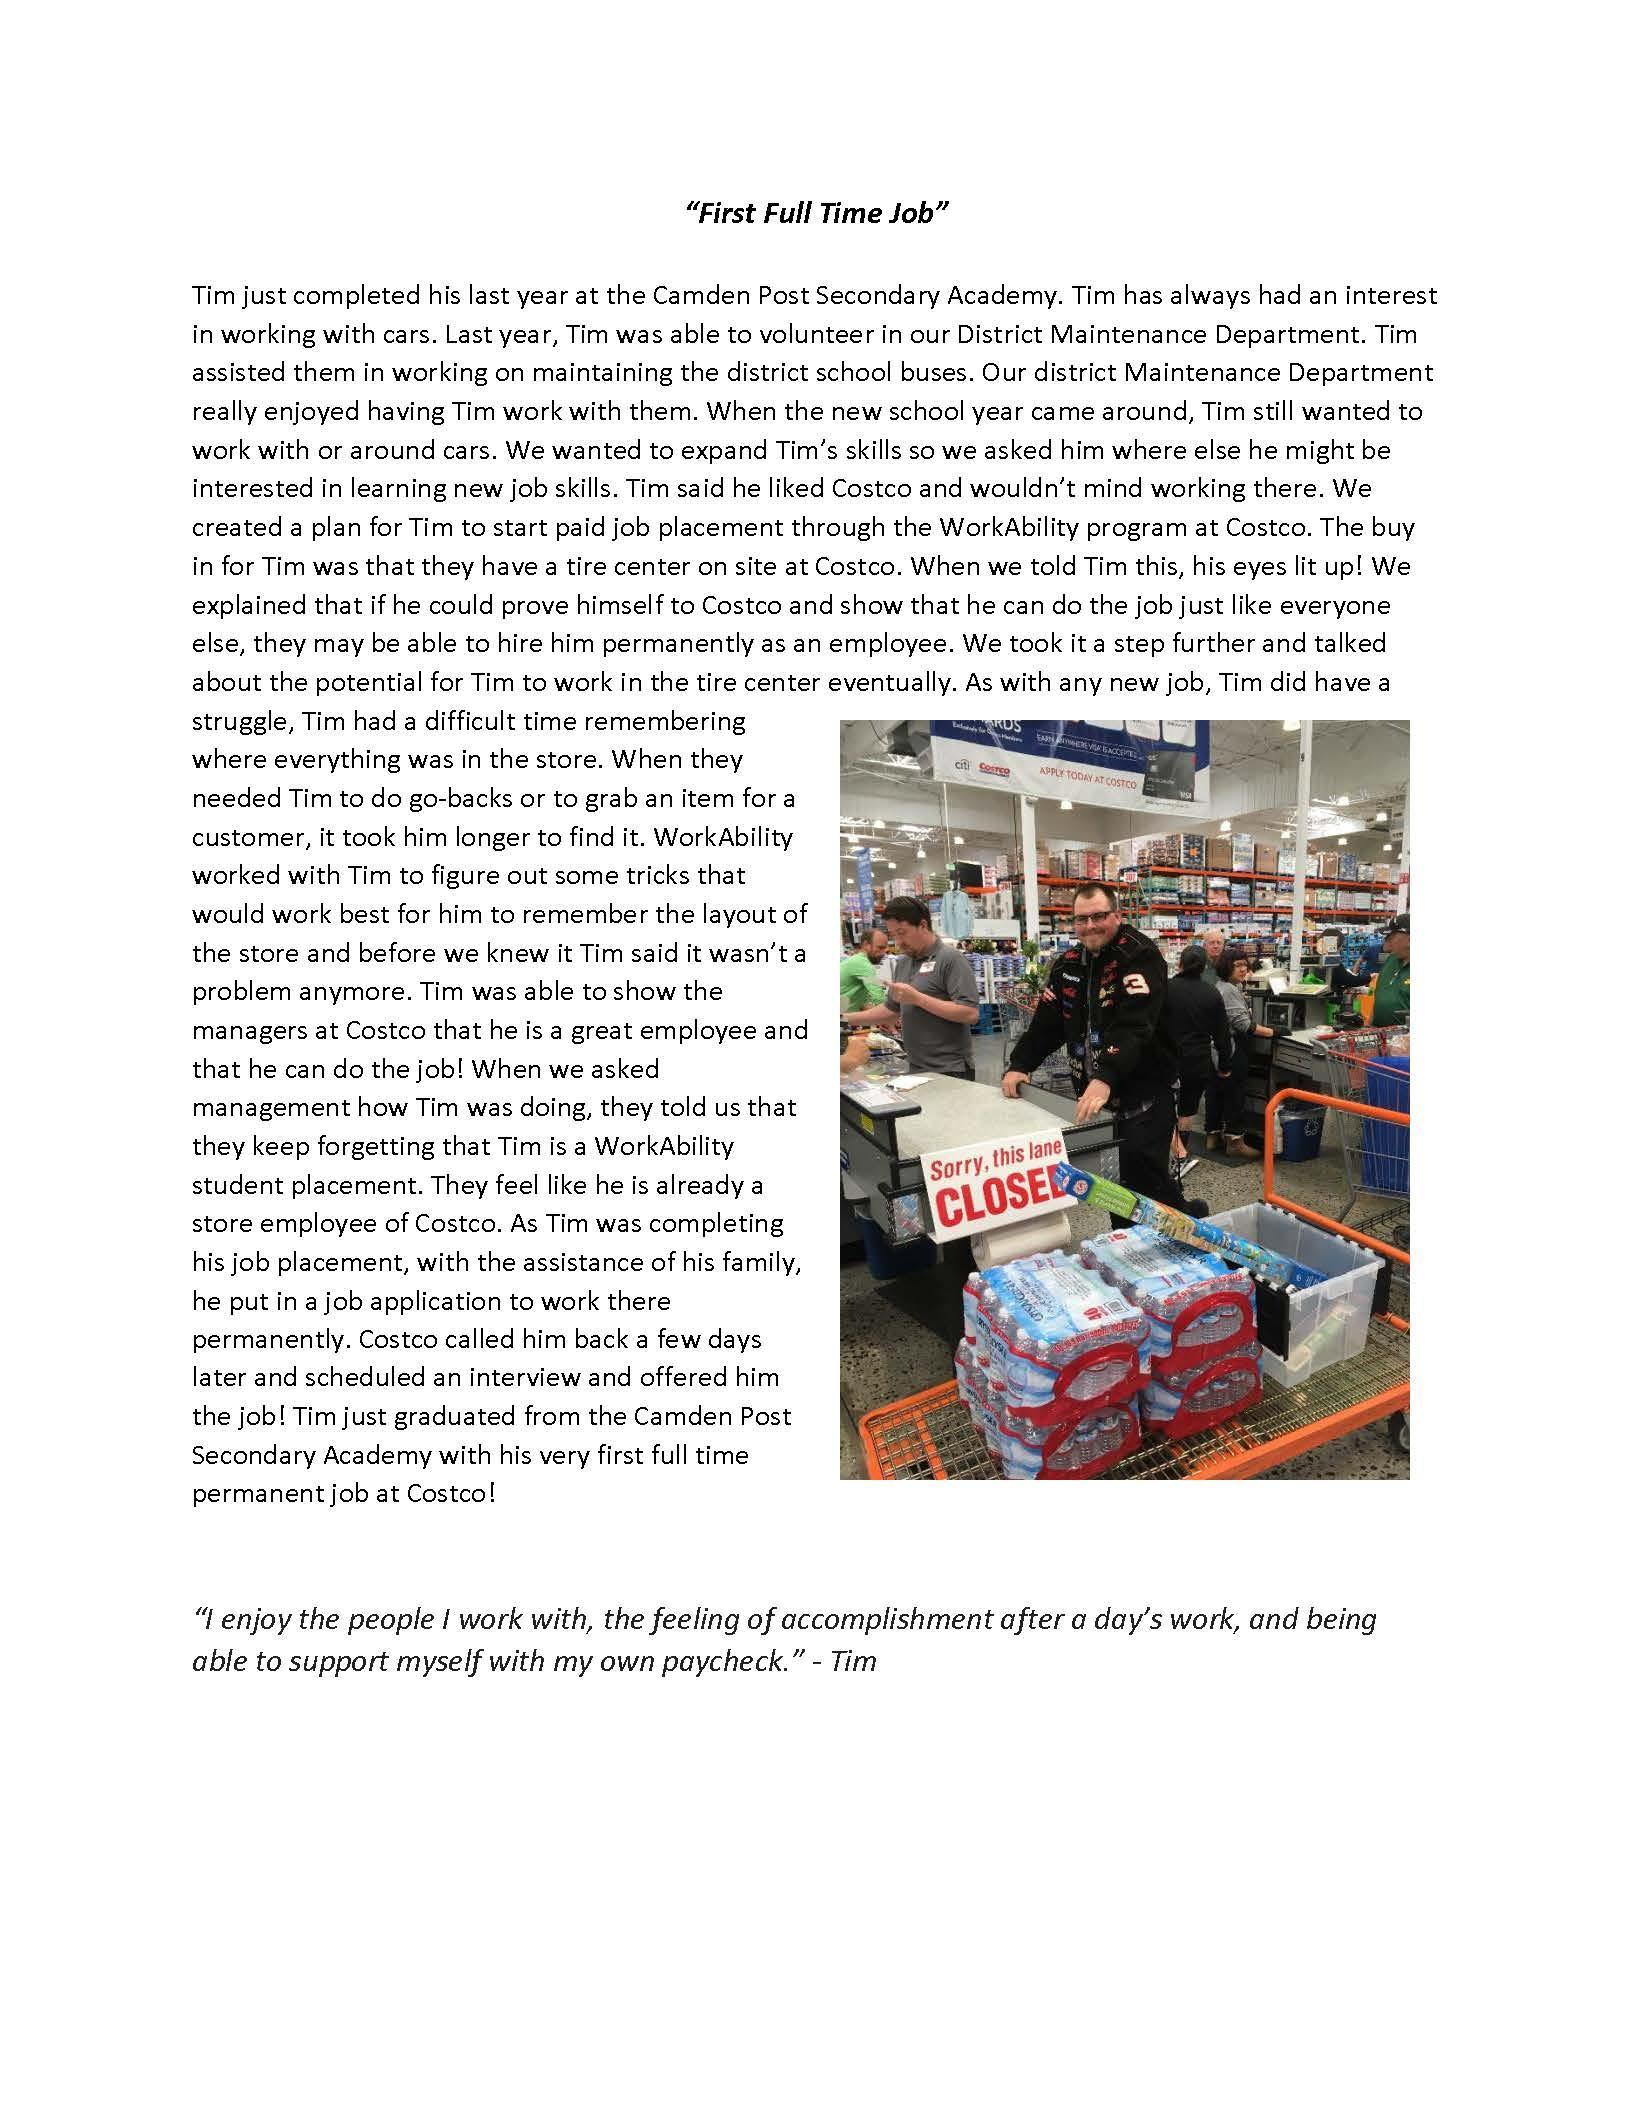 Working at Costco